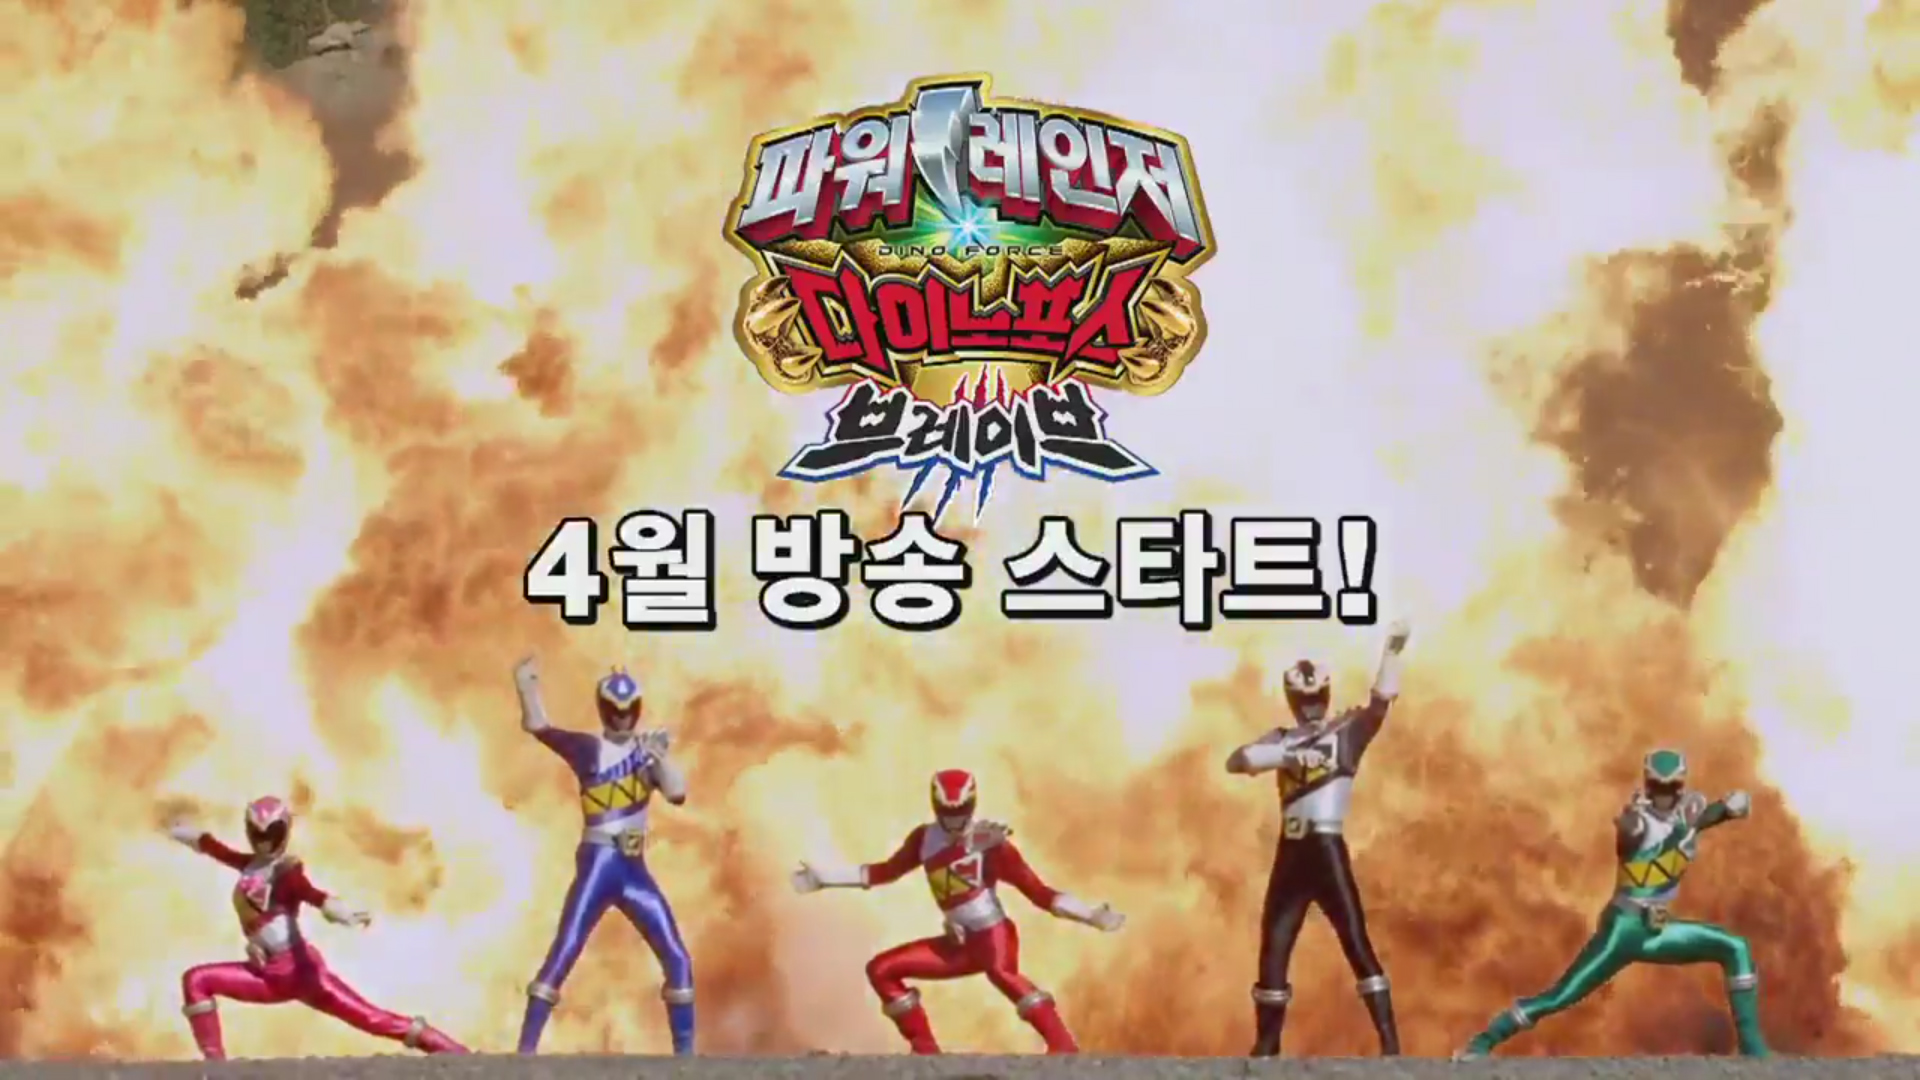 Power Rangers Dino Force Brave / Kyoryuger Brave Trailer Streaming Online